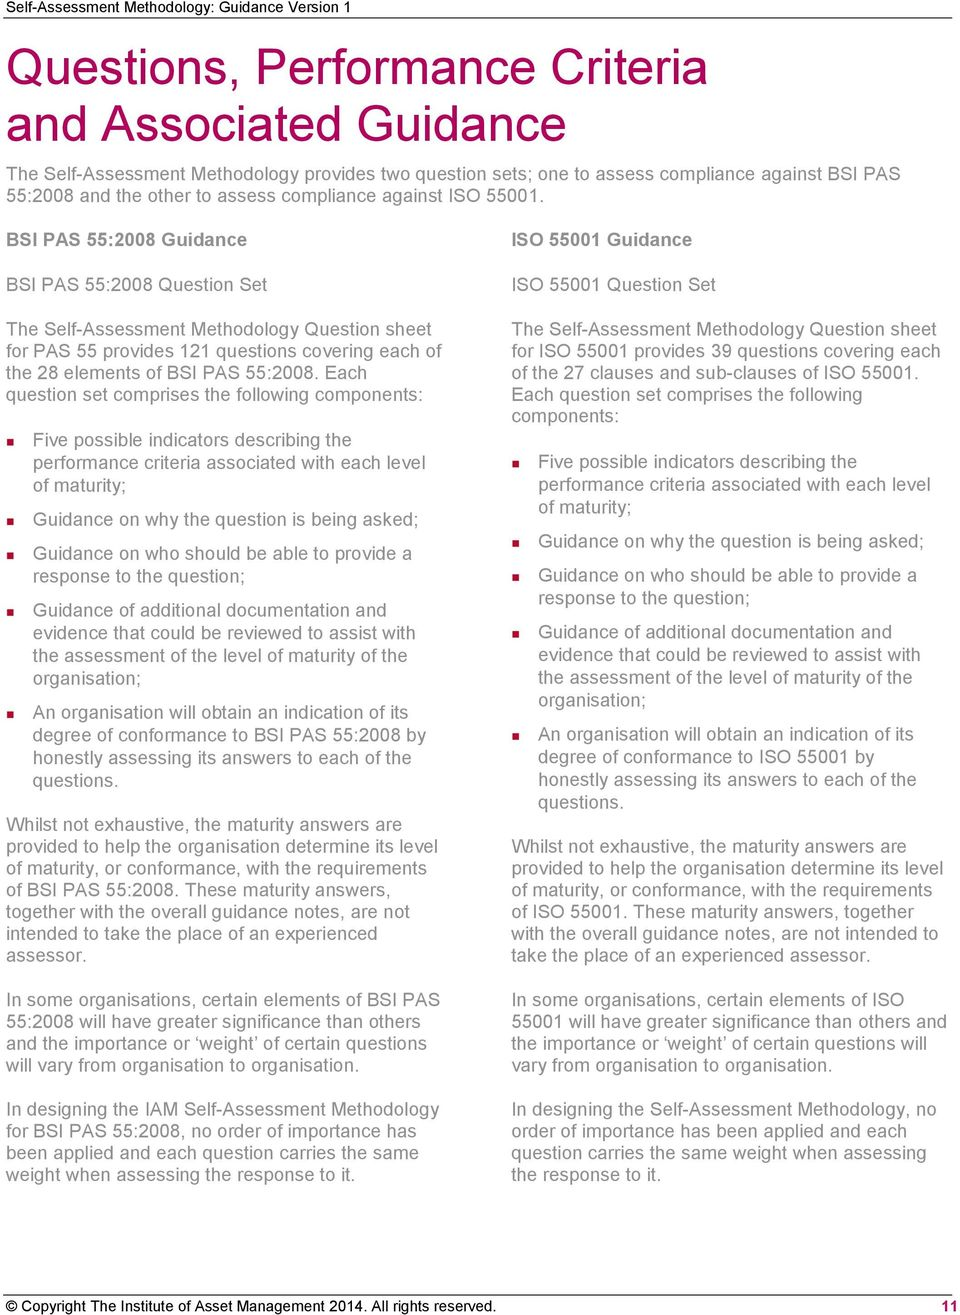 BSI PAS 55:2008 Guidance BSI PAS 55:2008 Question Set The Self-Assessment Methodology Question sheet for PAS 55 provides 121 questions covering each of the 28 elements of BSI PAS 55:2008.